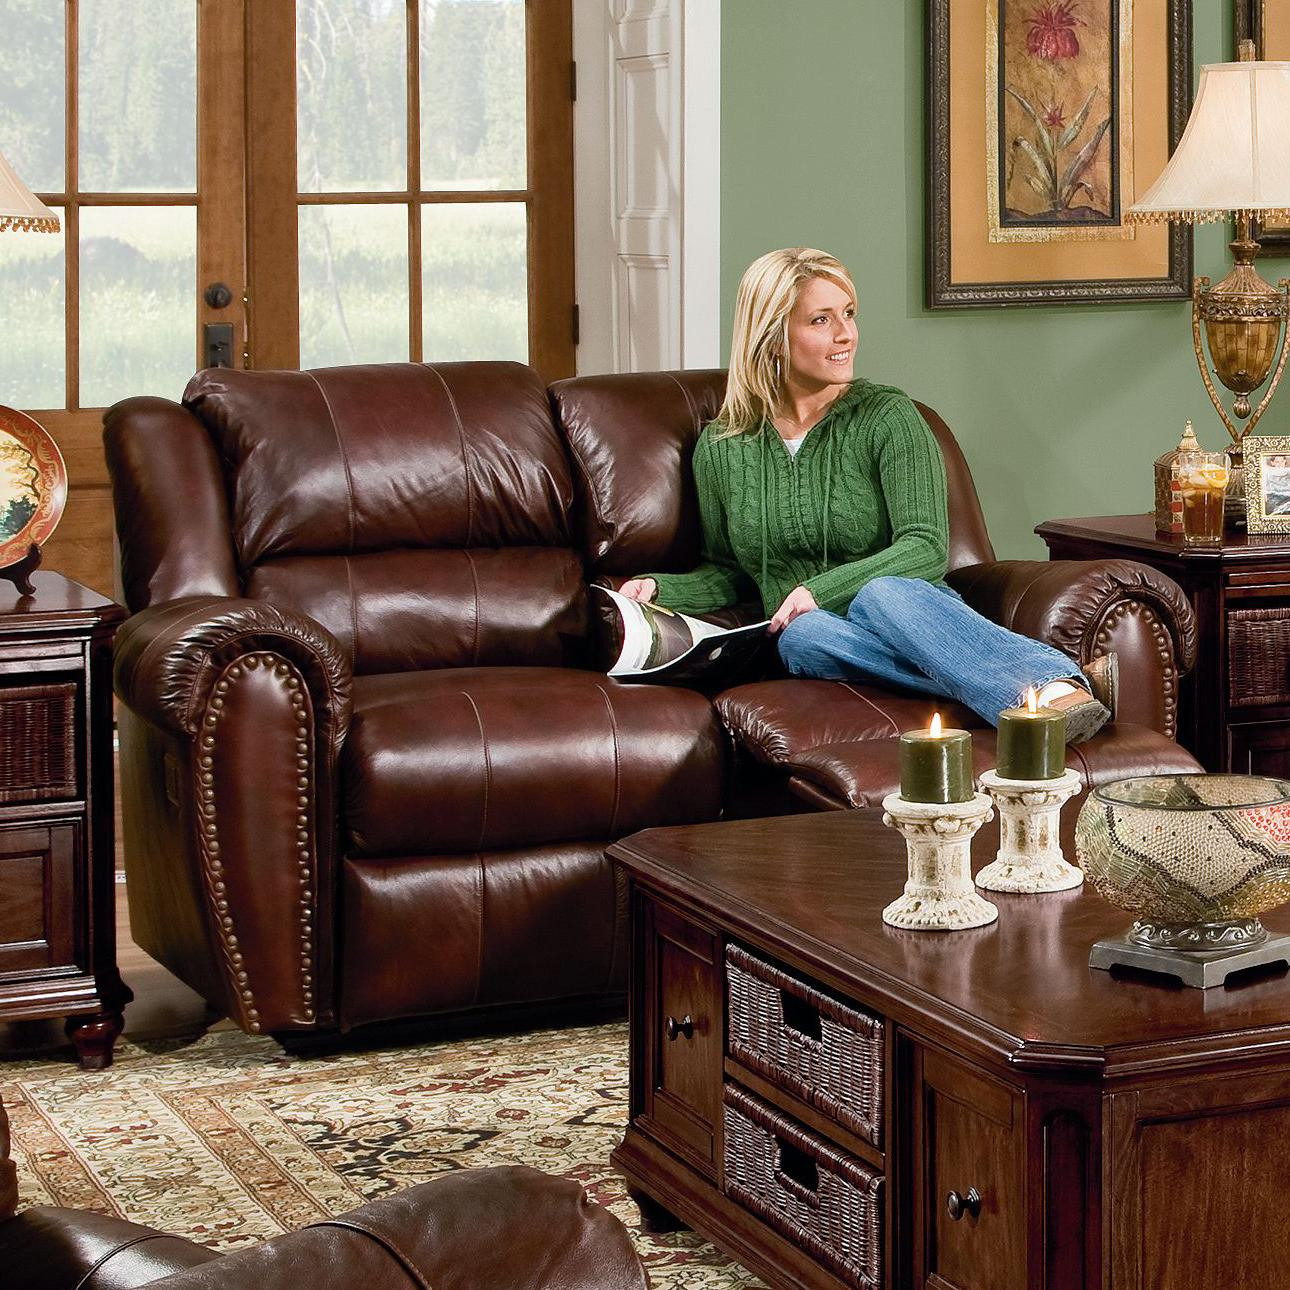 Swell Summerlin Double Reclining Loveseat Gmtry Best Dining Table And Chair Ideas Images Gmtryco